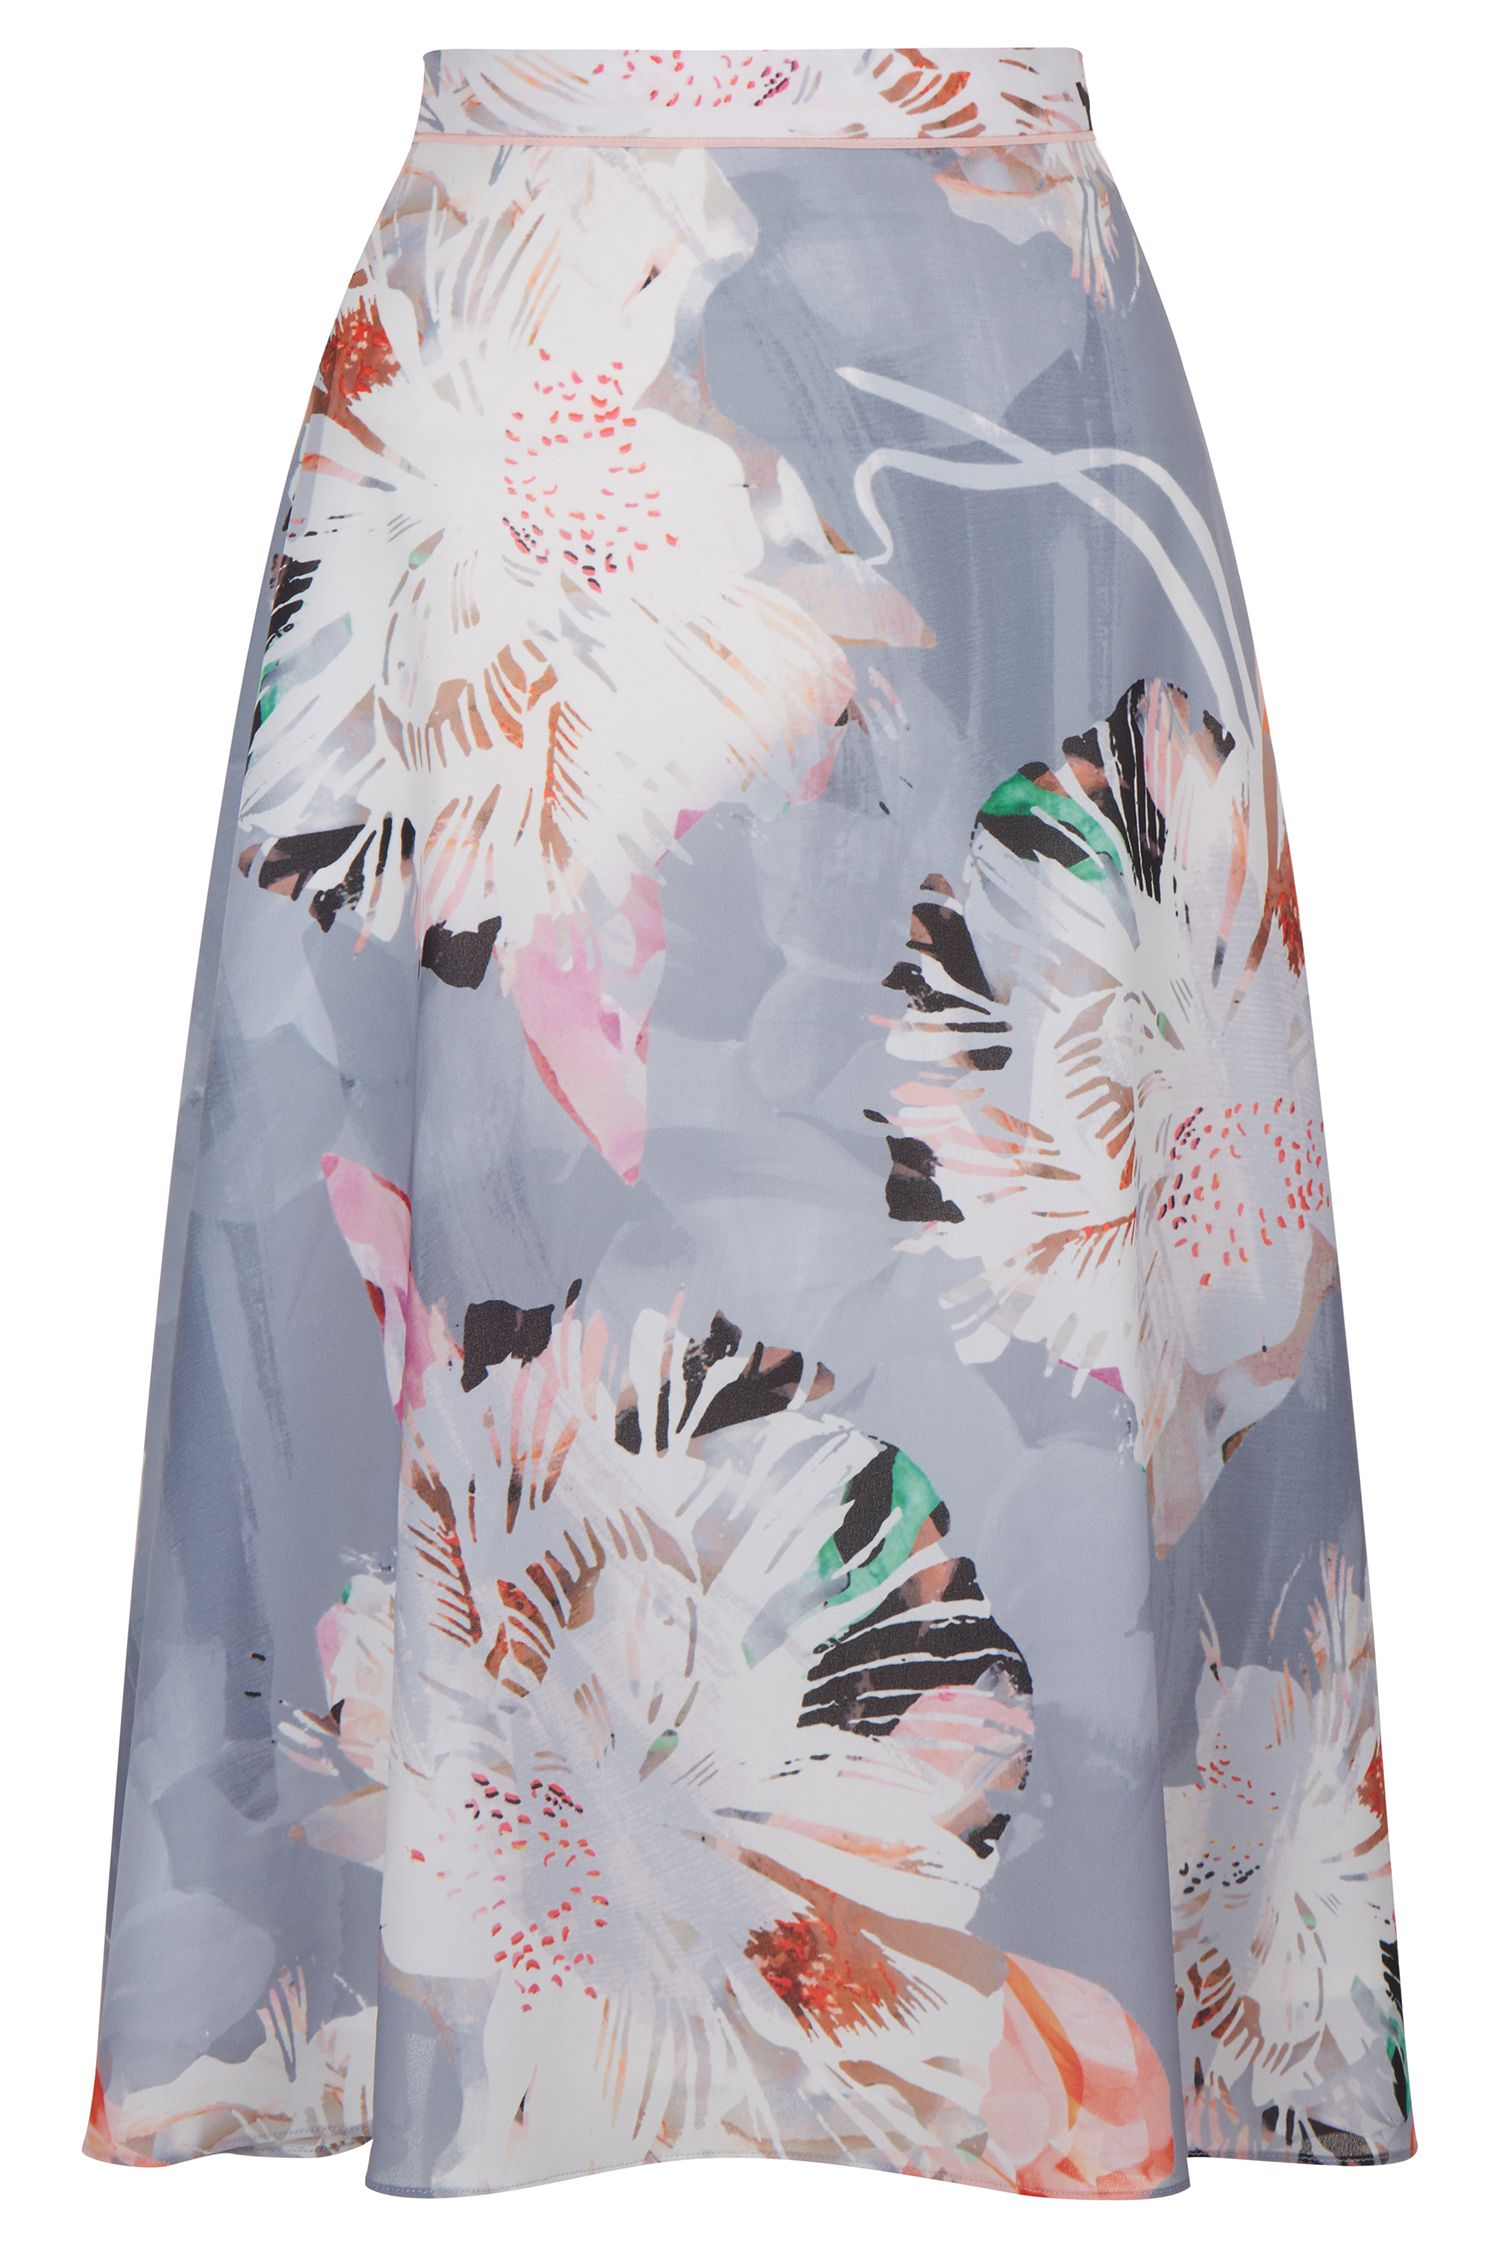 Fenn Wright Manson Madeira Skirt, Multi-Coloured